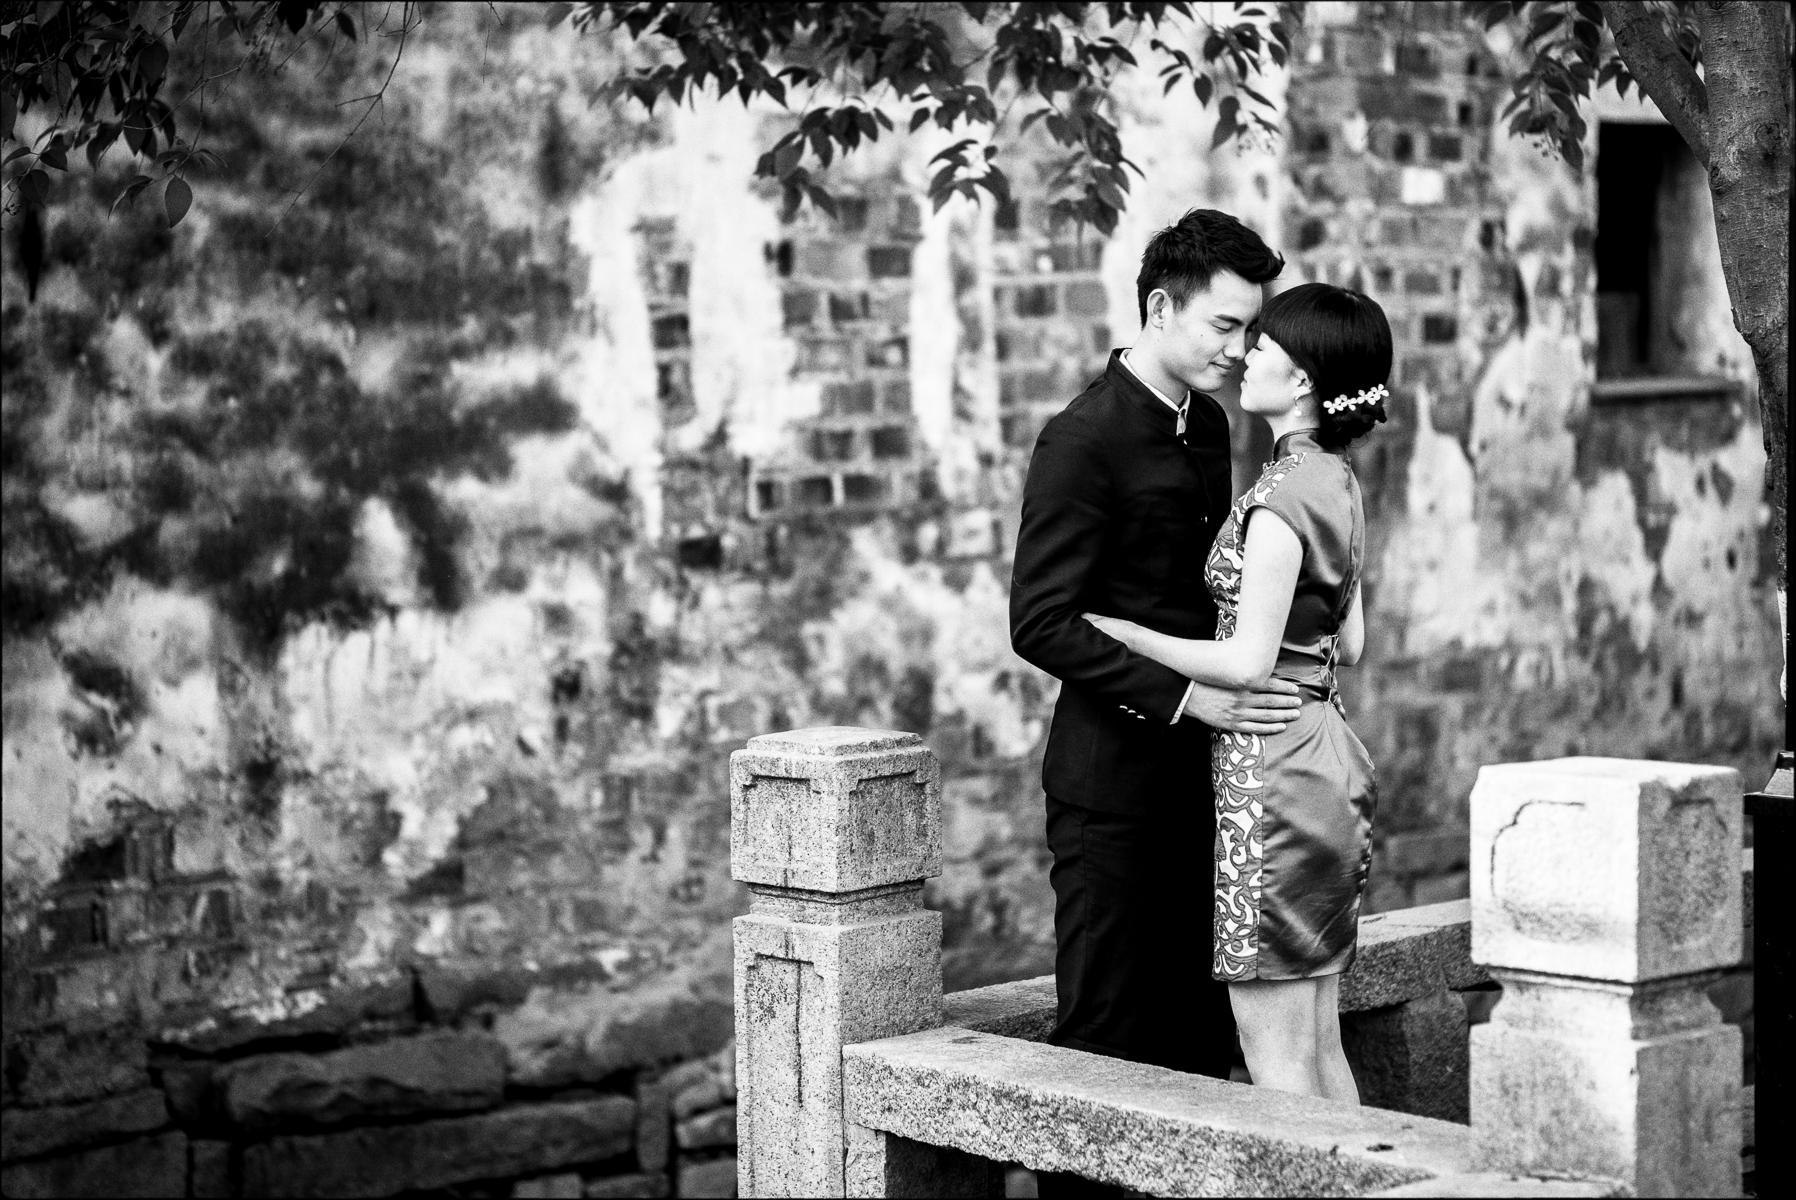 Betrothal, Suzhou : street & stories : TIMOTHY FLOYD PHOTOGRAPHER, NATURE PHOTOGRAPHY, PHOTO ESSAYS, PHOTOJOURNALISM